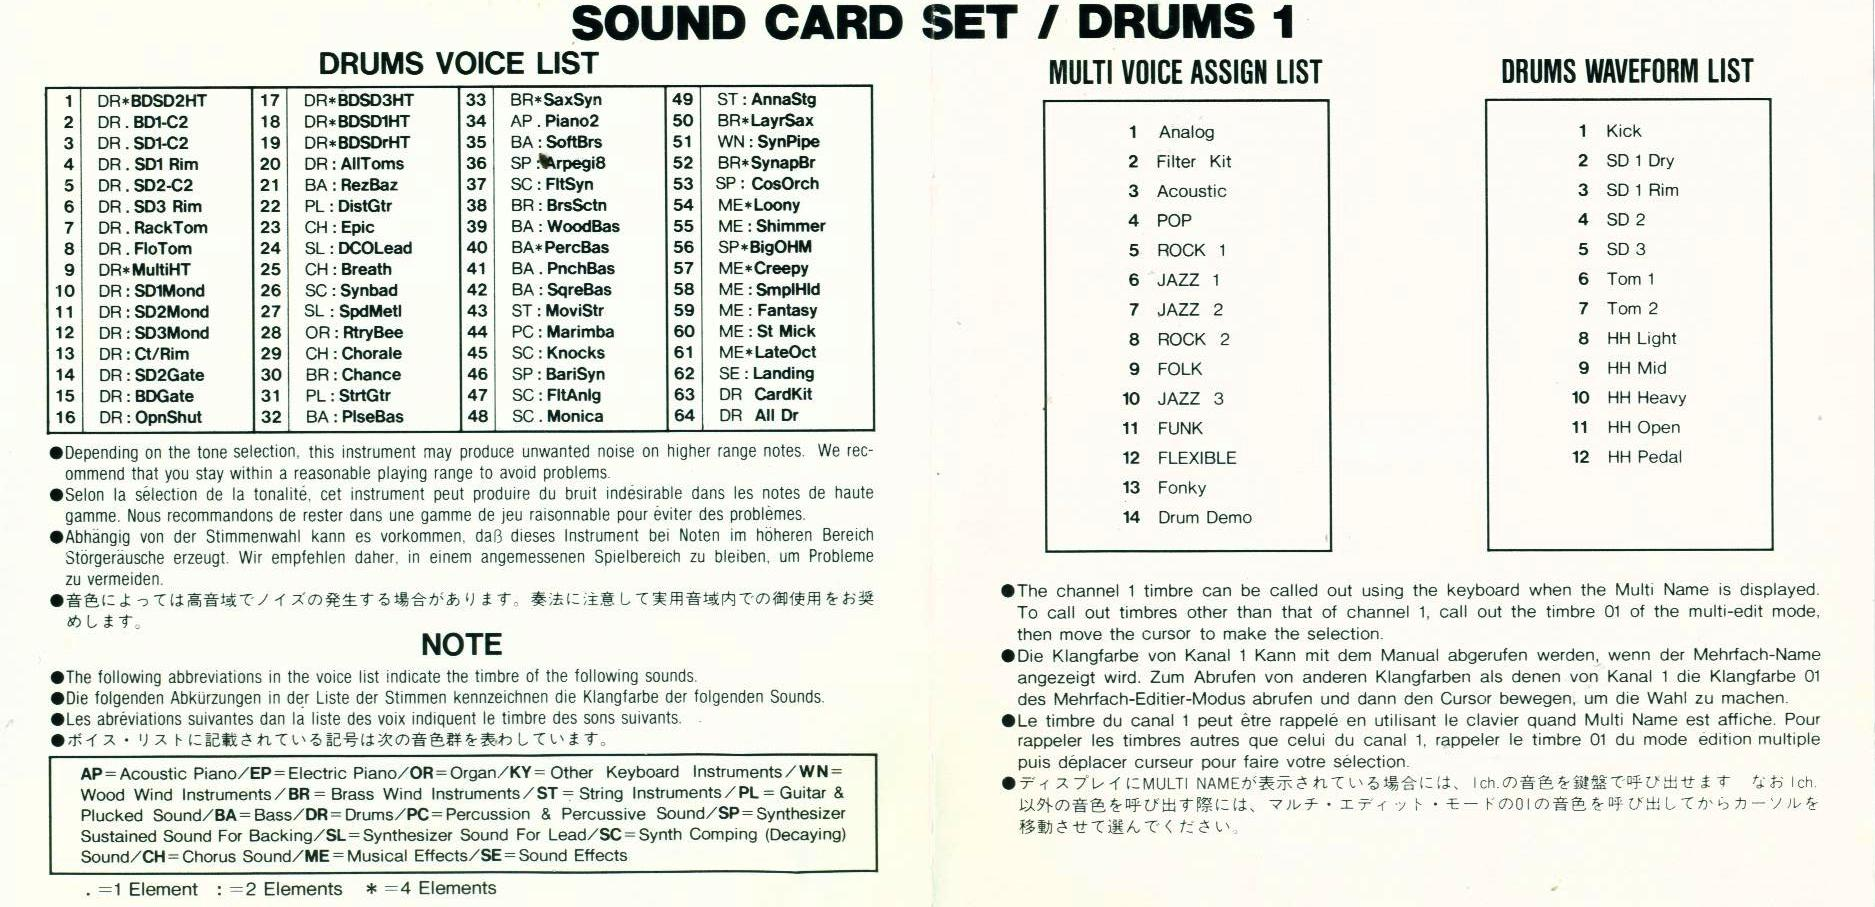 oldschooldaw com Array - index of yamaha s5502 drums 1 images rh synthmania  com